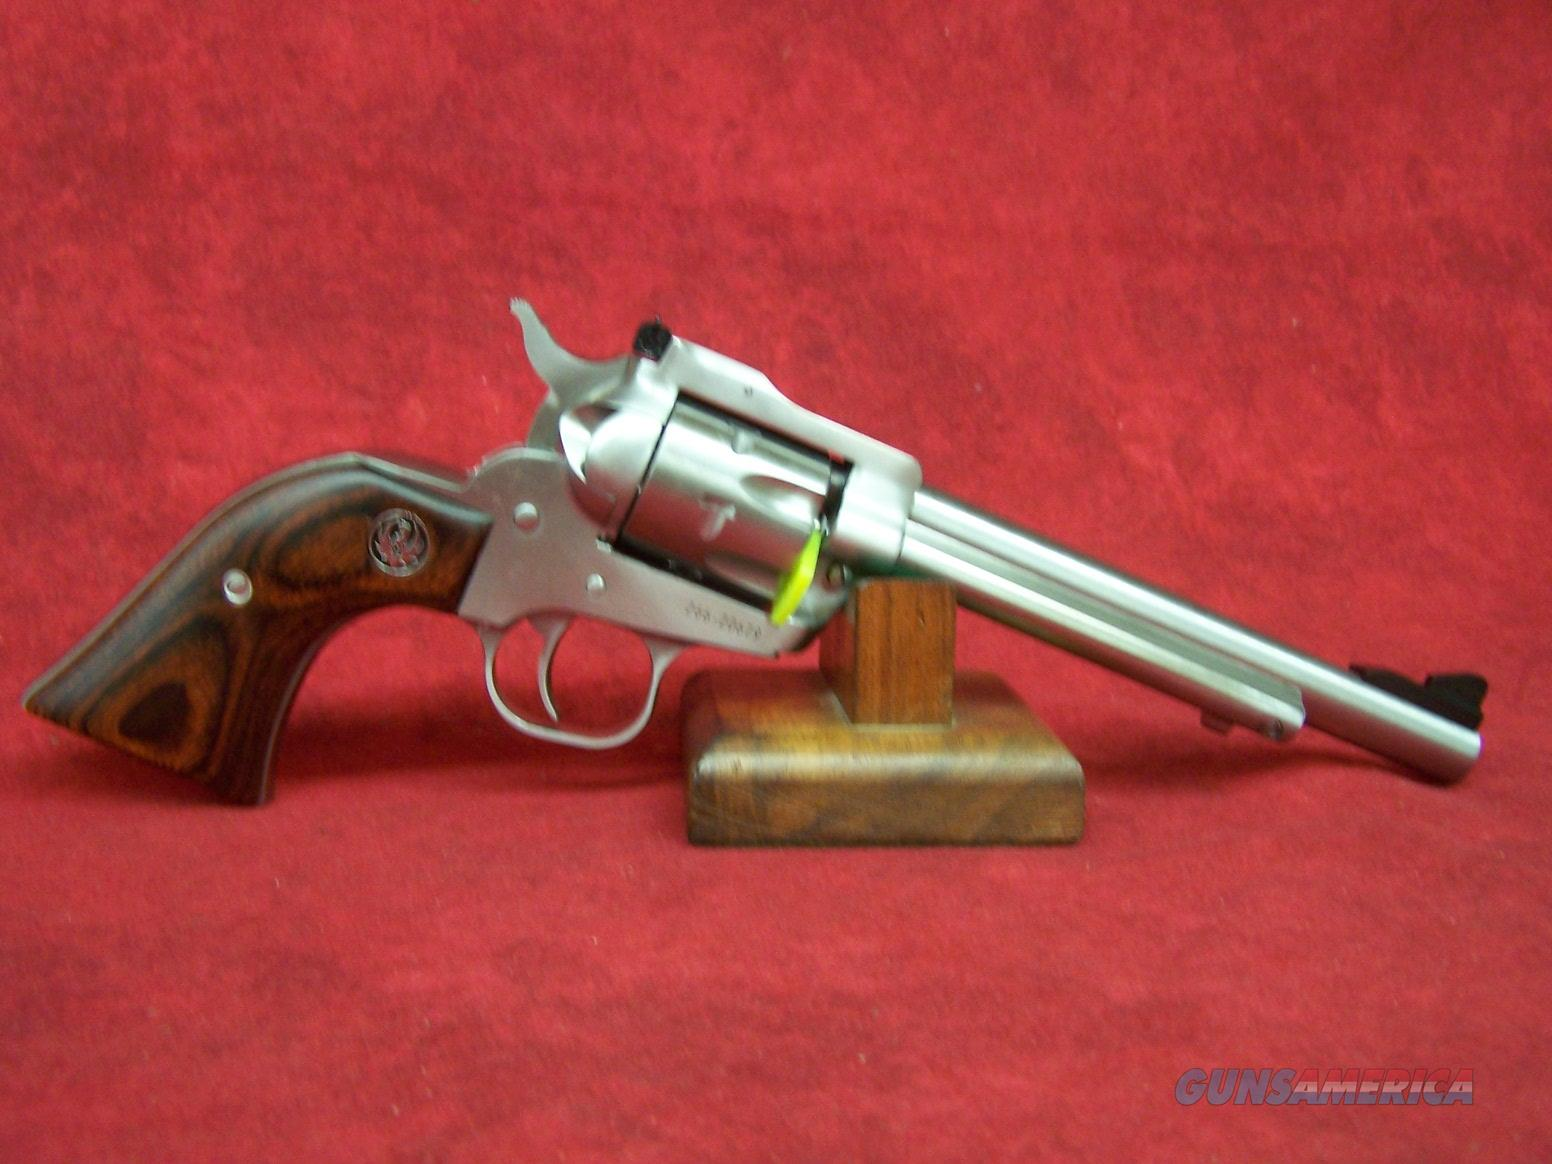 """Ruger Single Six Convertible .22LR / 22 mag 6.5"""" SS Barrel (00626)  Guns > Pistols > Ruger Single Action Revolvers > Single Six Type"""